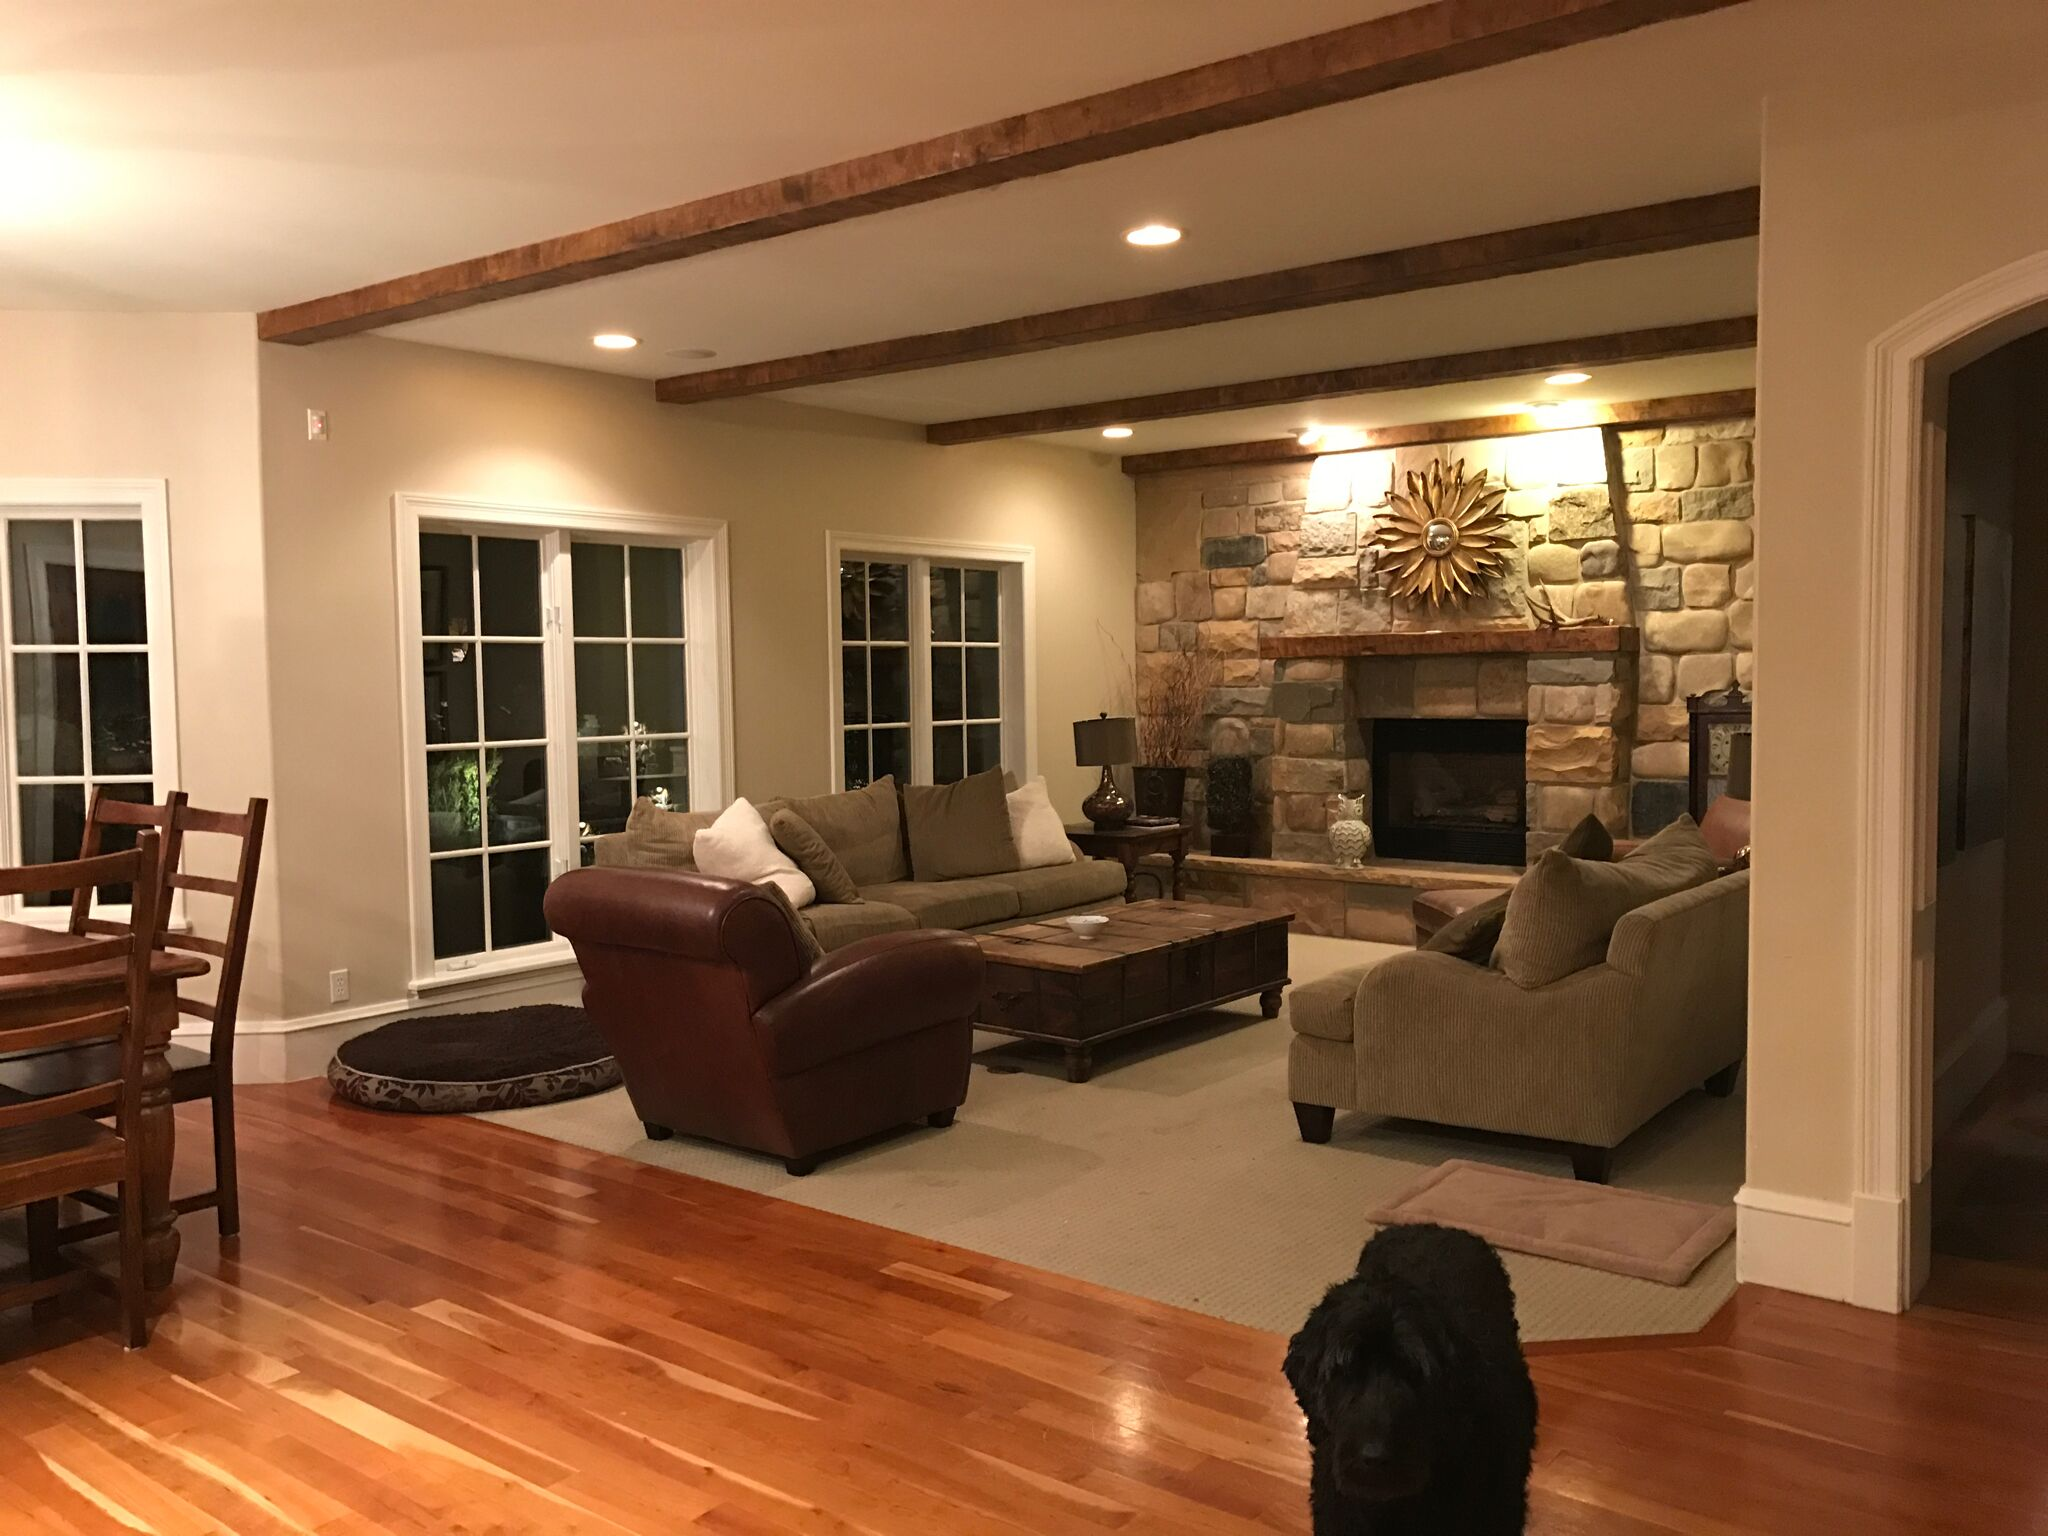 Riverbottoms Remodel Living Room Reveal